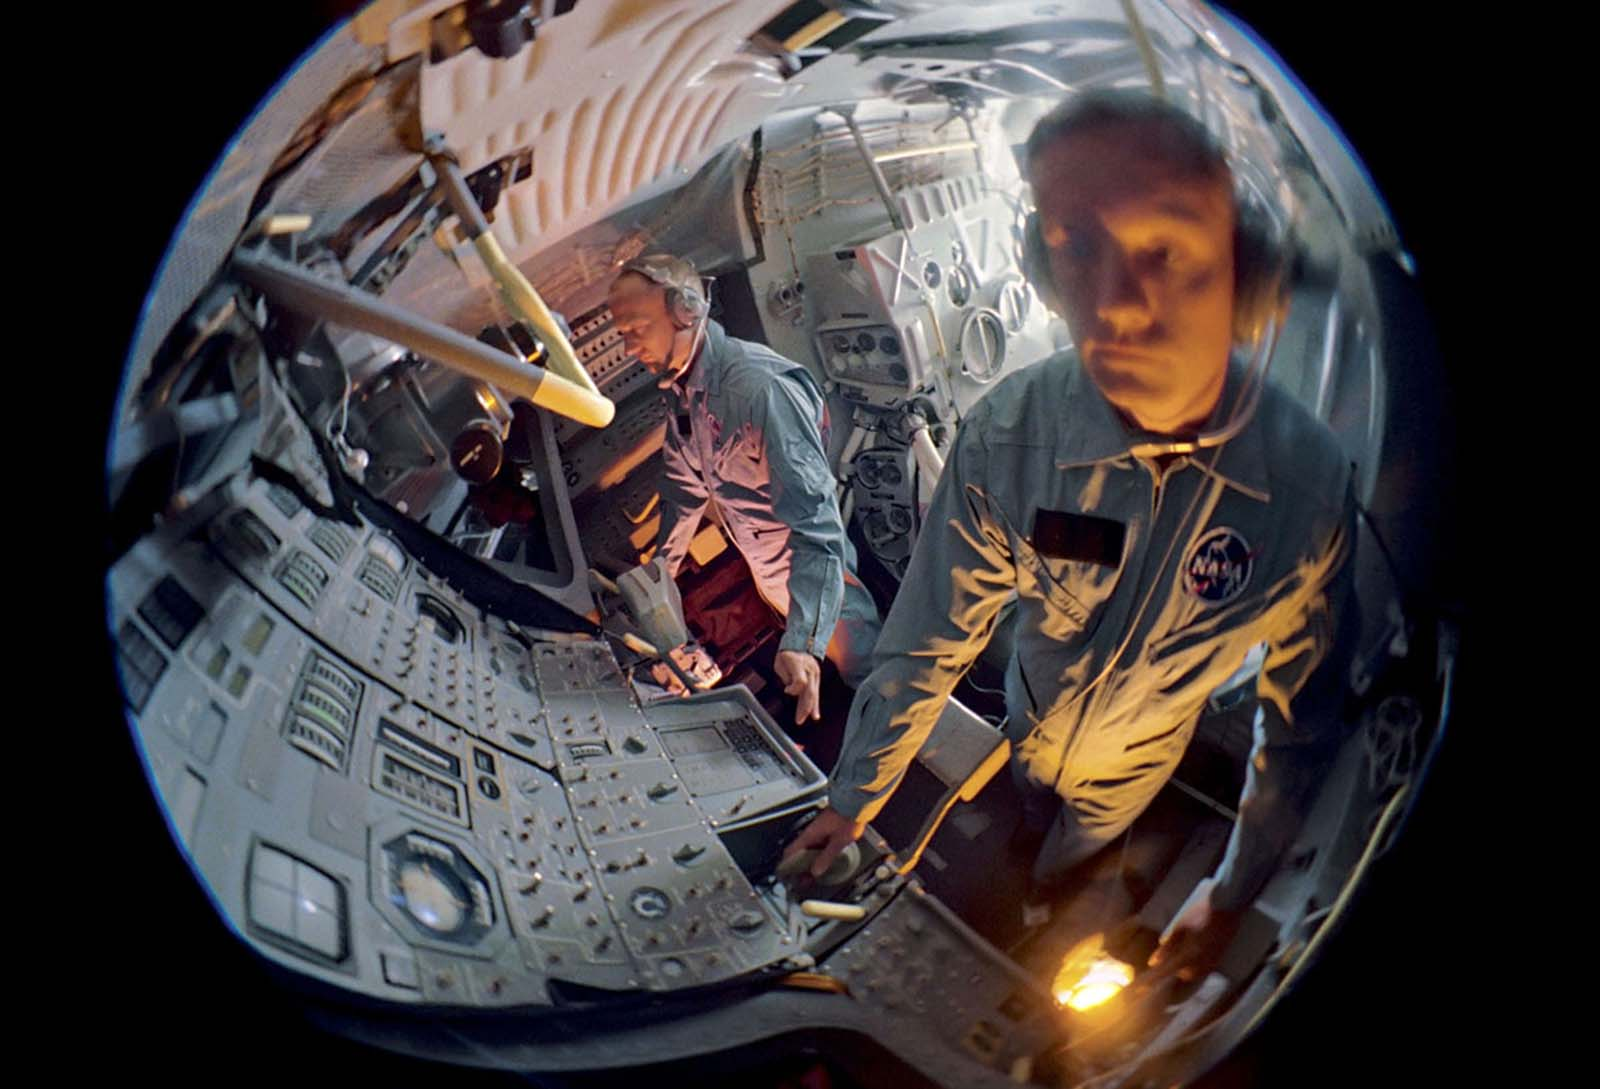 A fish-eye view of the astronauts Buzz Aldrin and Neil Armstrong as they train in a mock-up lunar module.